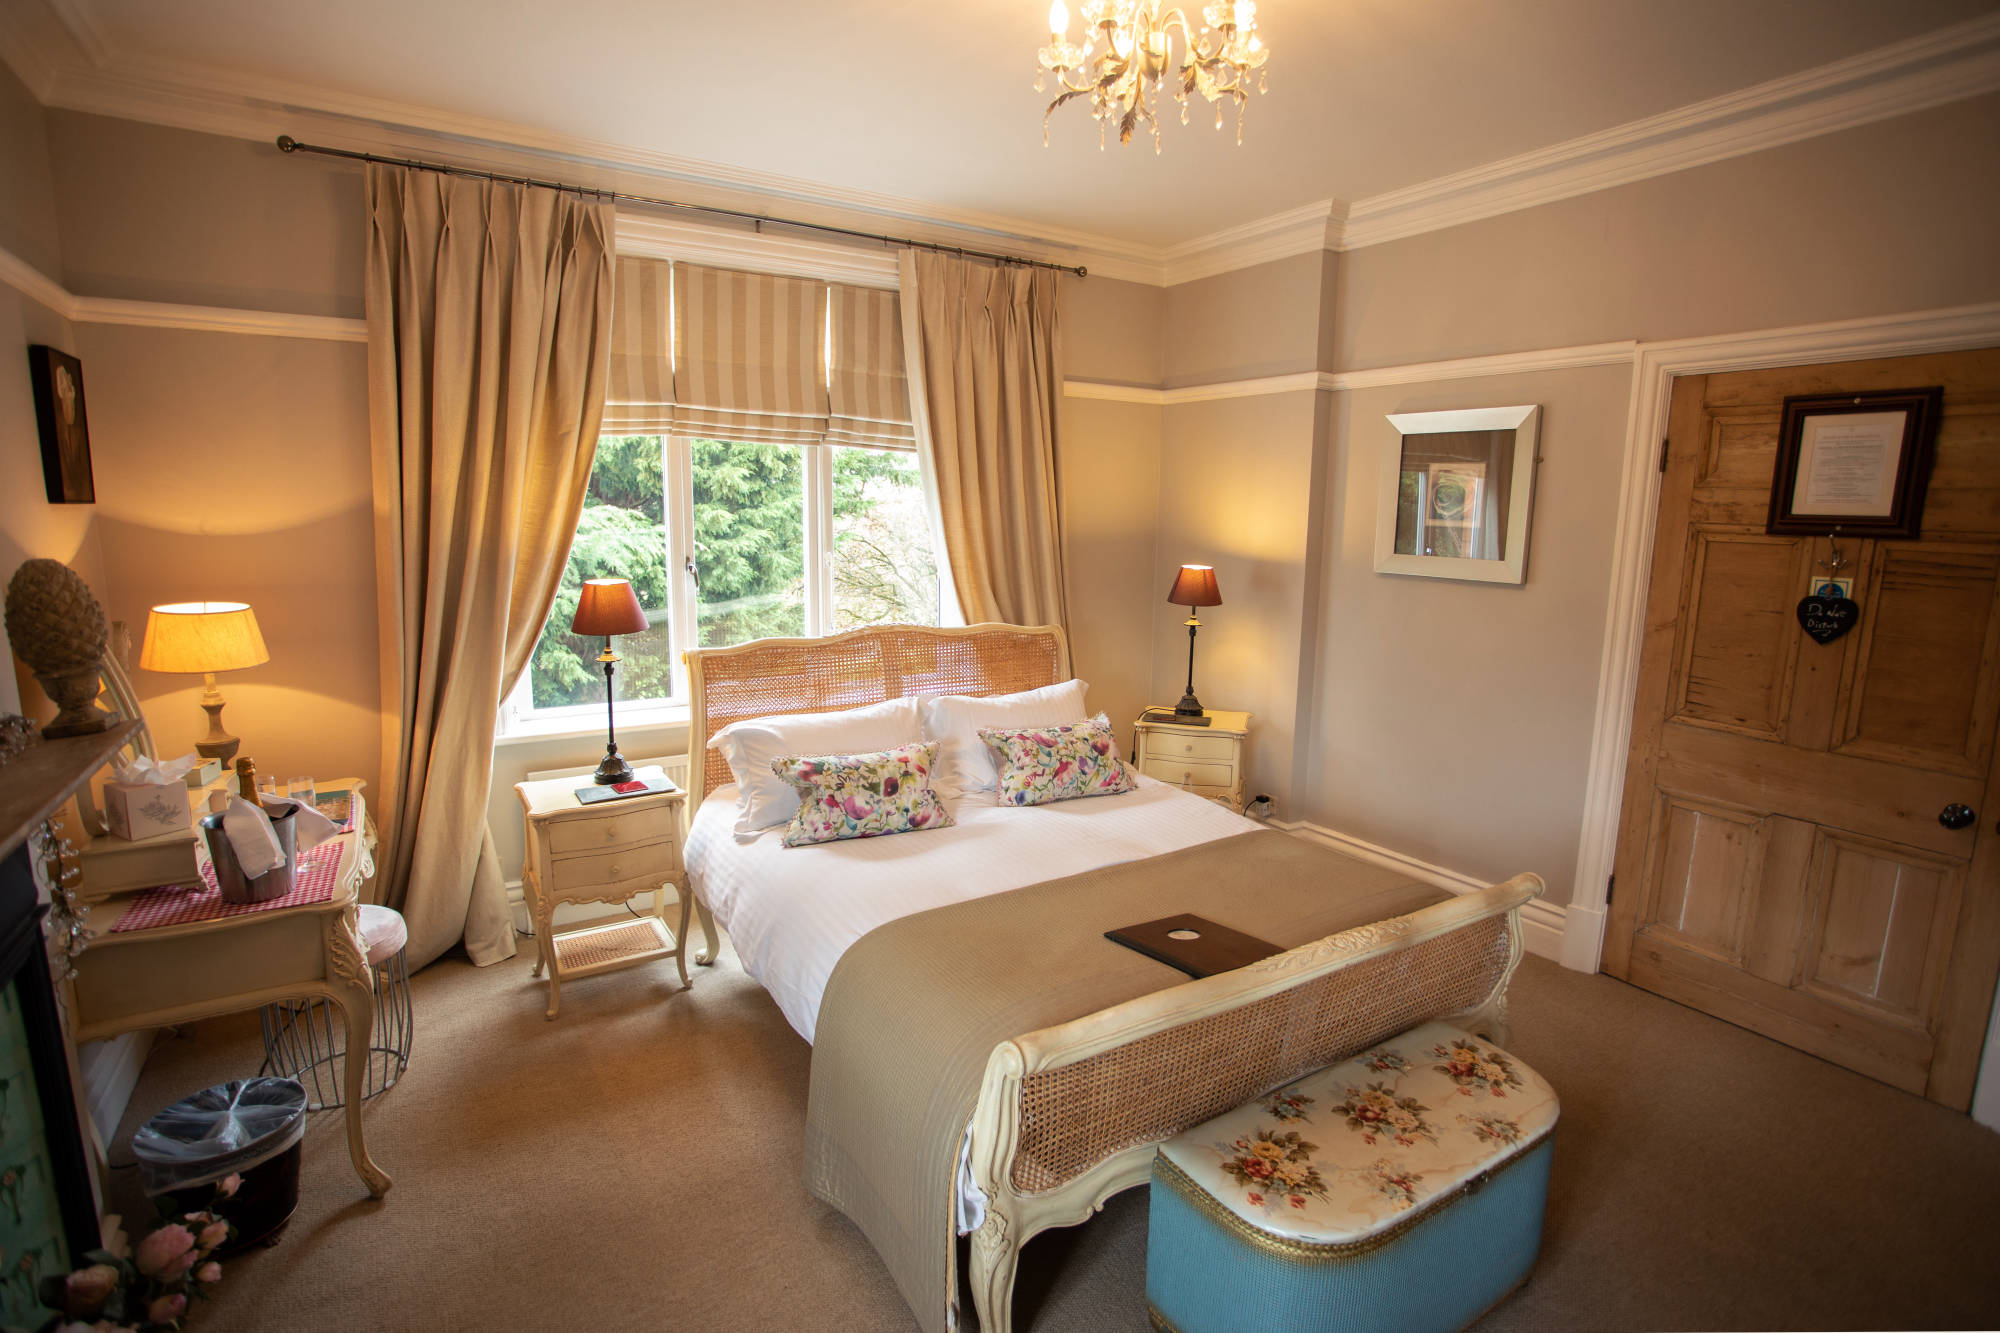 Luxury Ensuite Accommodation in The Malvern Hills, Worcestershire